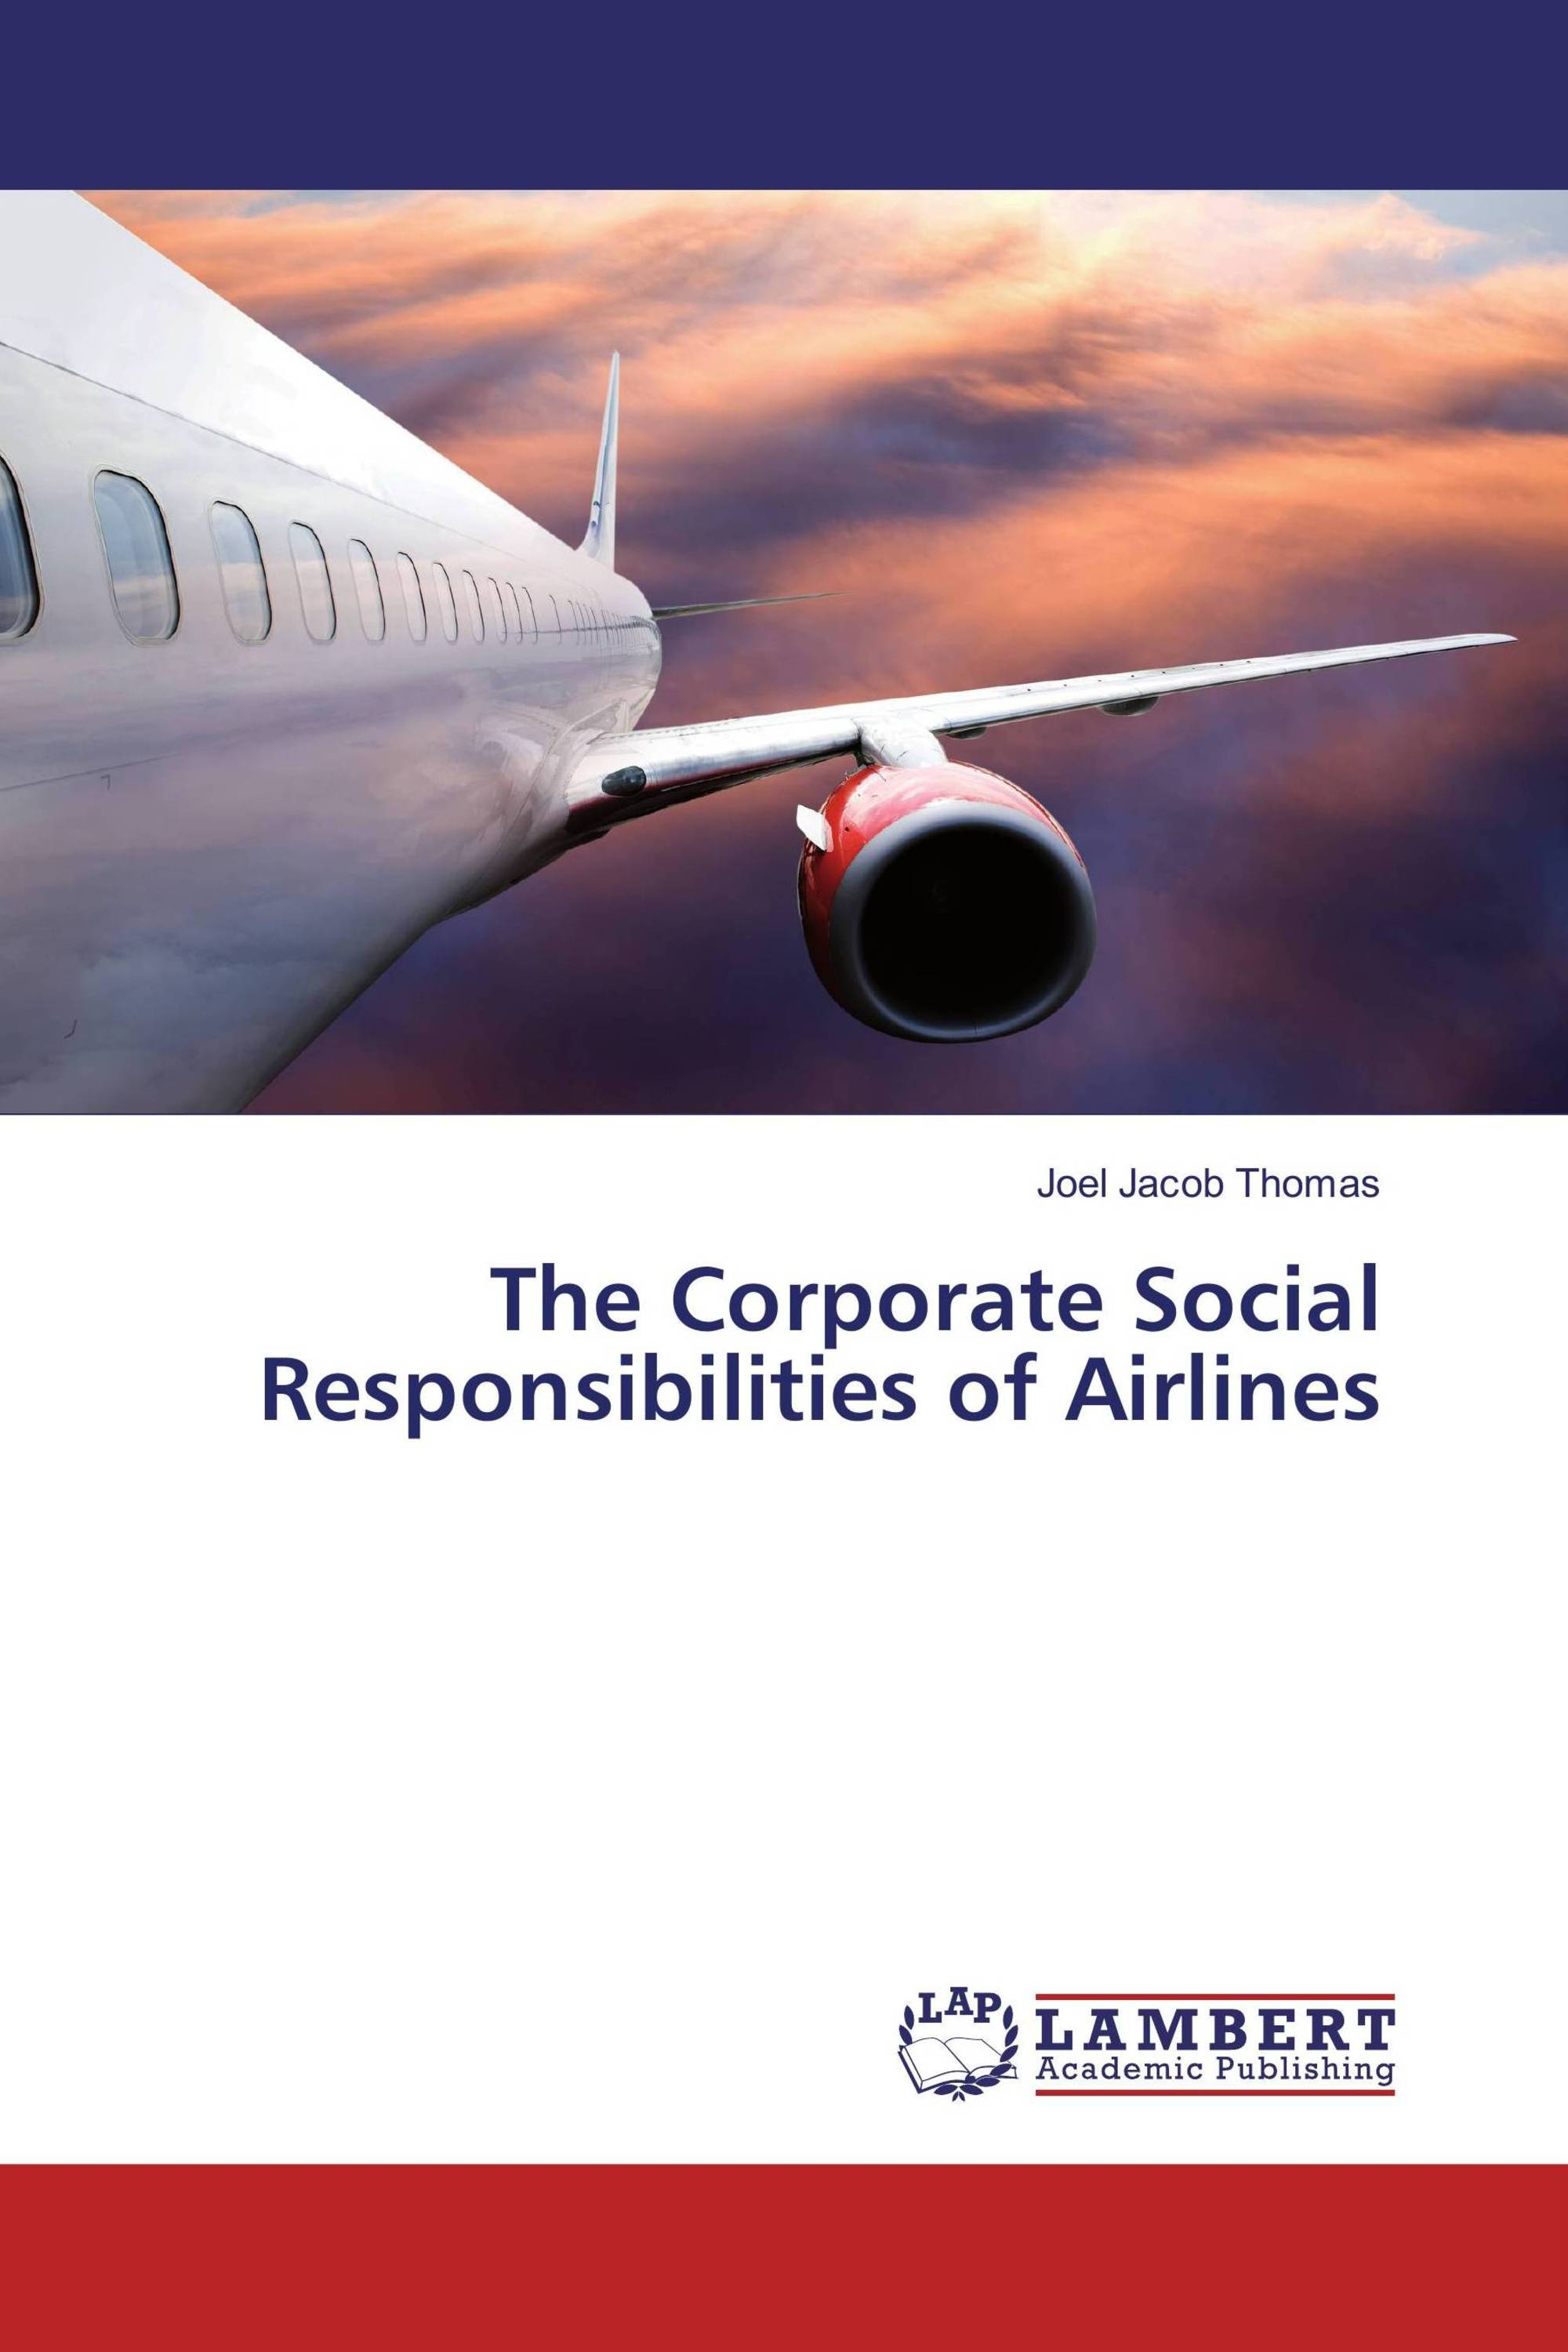 corporate social responsibility british airways Approaches to corporate social responsibility british airways social responsibility aim to set the highest standards across all aspects: customer employee.